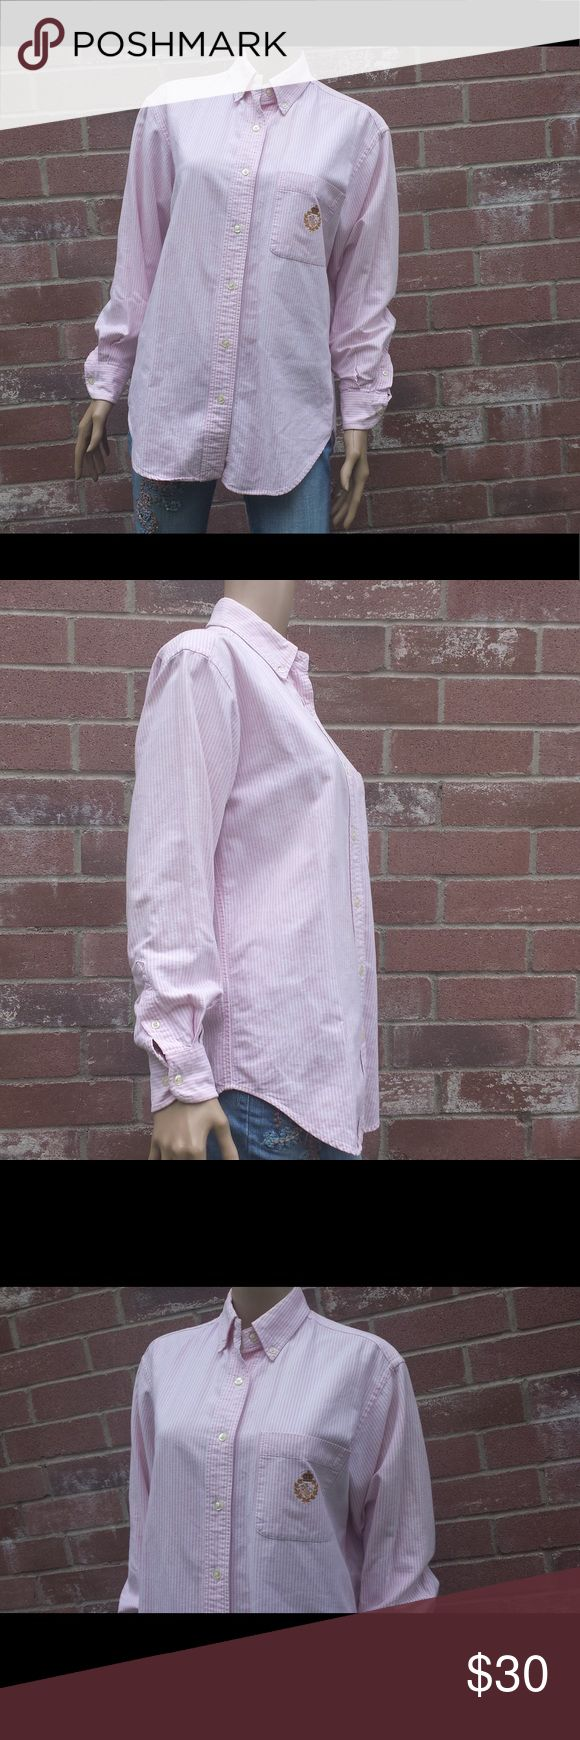 "Lauren Ralph Lauren Pink & White Oxford Shirt Sz 8 Buttoned placket, straight buttoned down collar, barrel cuffs, embroidered ""LRL"" logo on chest pocket, split back yoke for a smooth contoured shoulder, cotton, machine washable: Arm pit to arm pit 21"" Shoulder seam to shoulder seam 18"" Shoulder seam to end of cuff 21"" Back of collar to bottom of hem 29.5"" Vintage Tops Button Down Shirts"